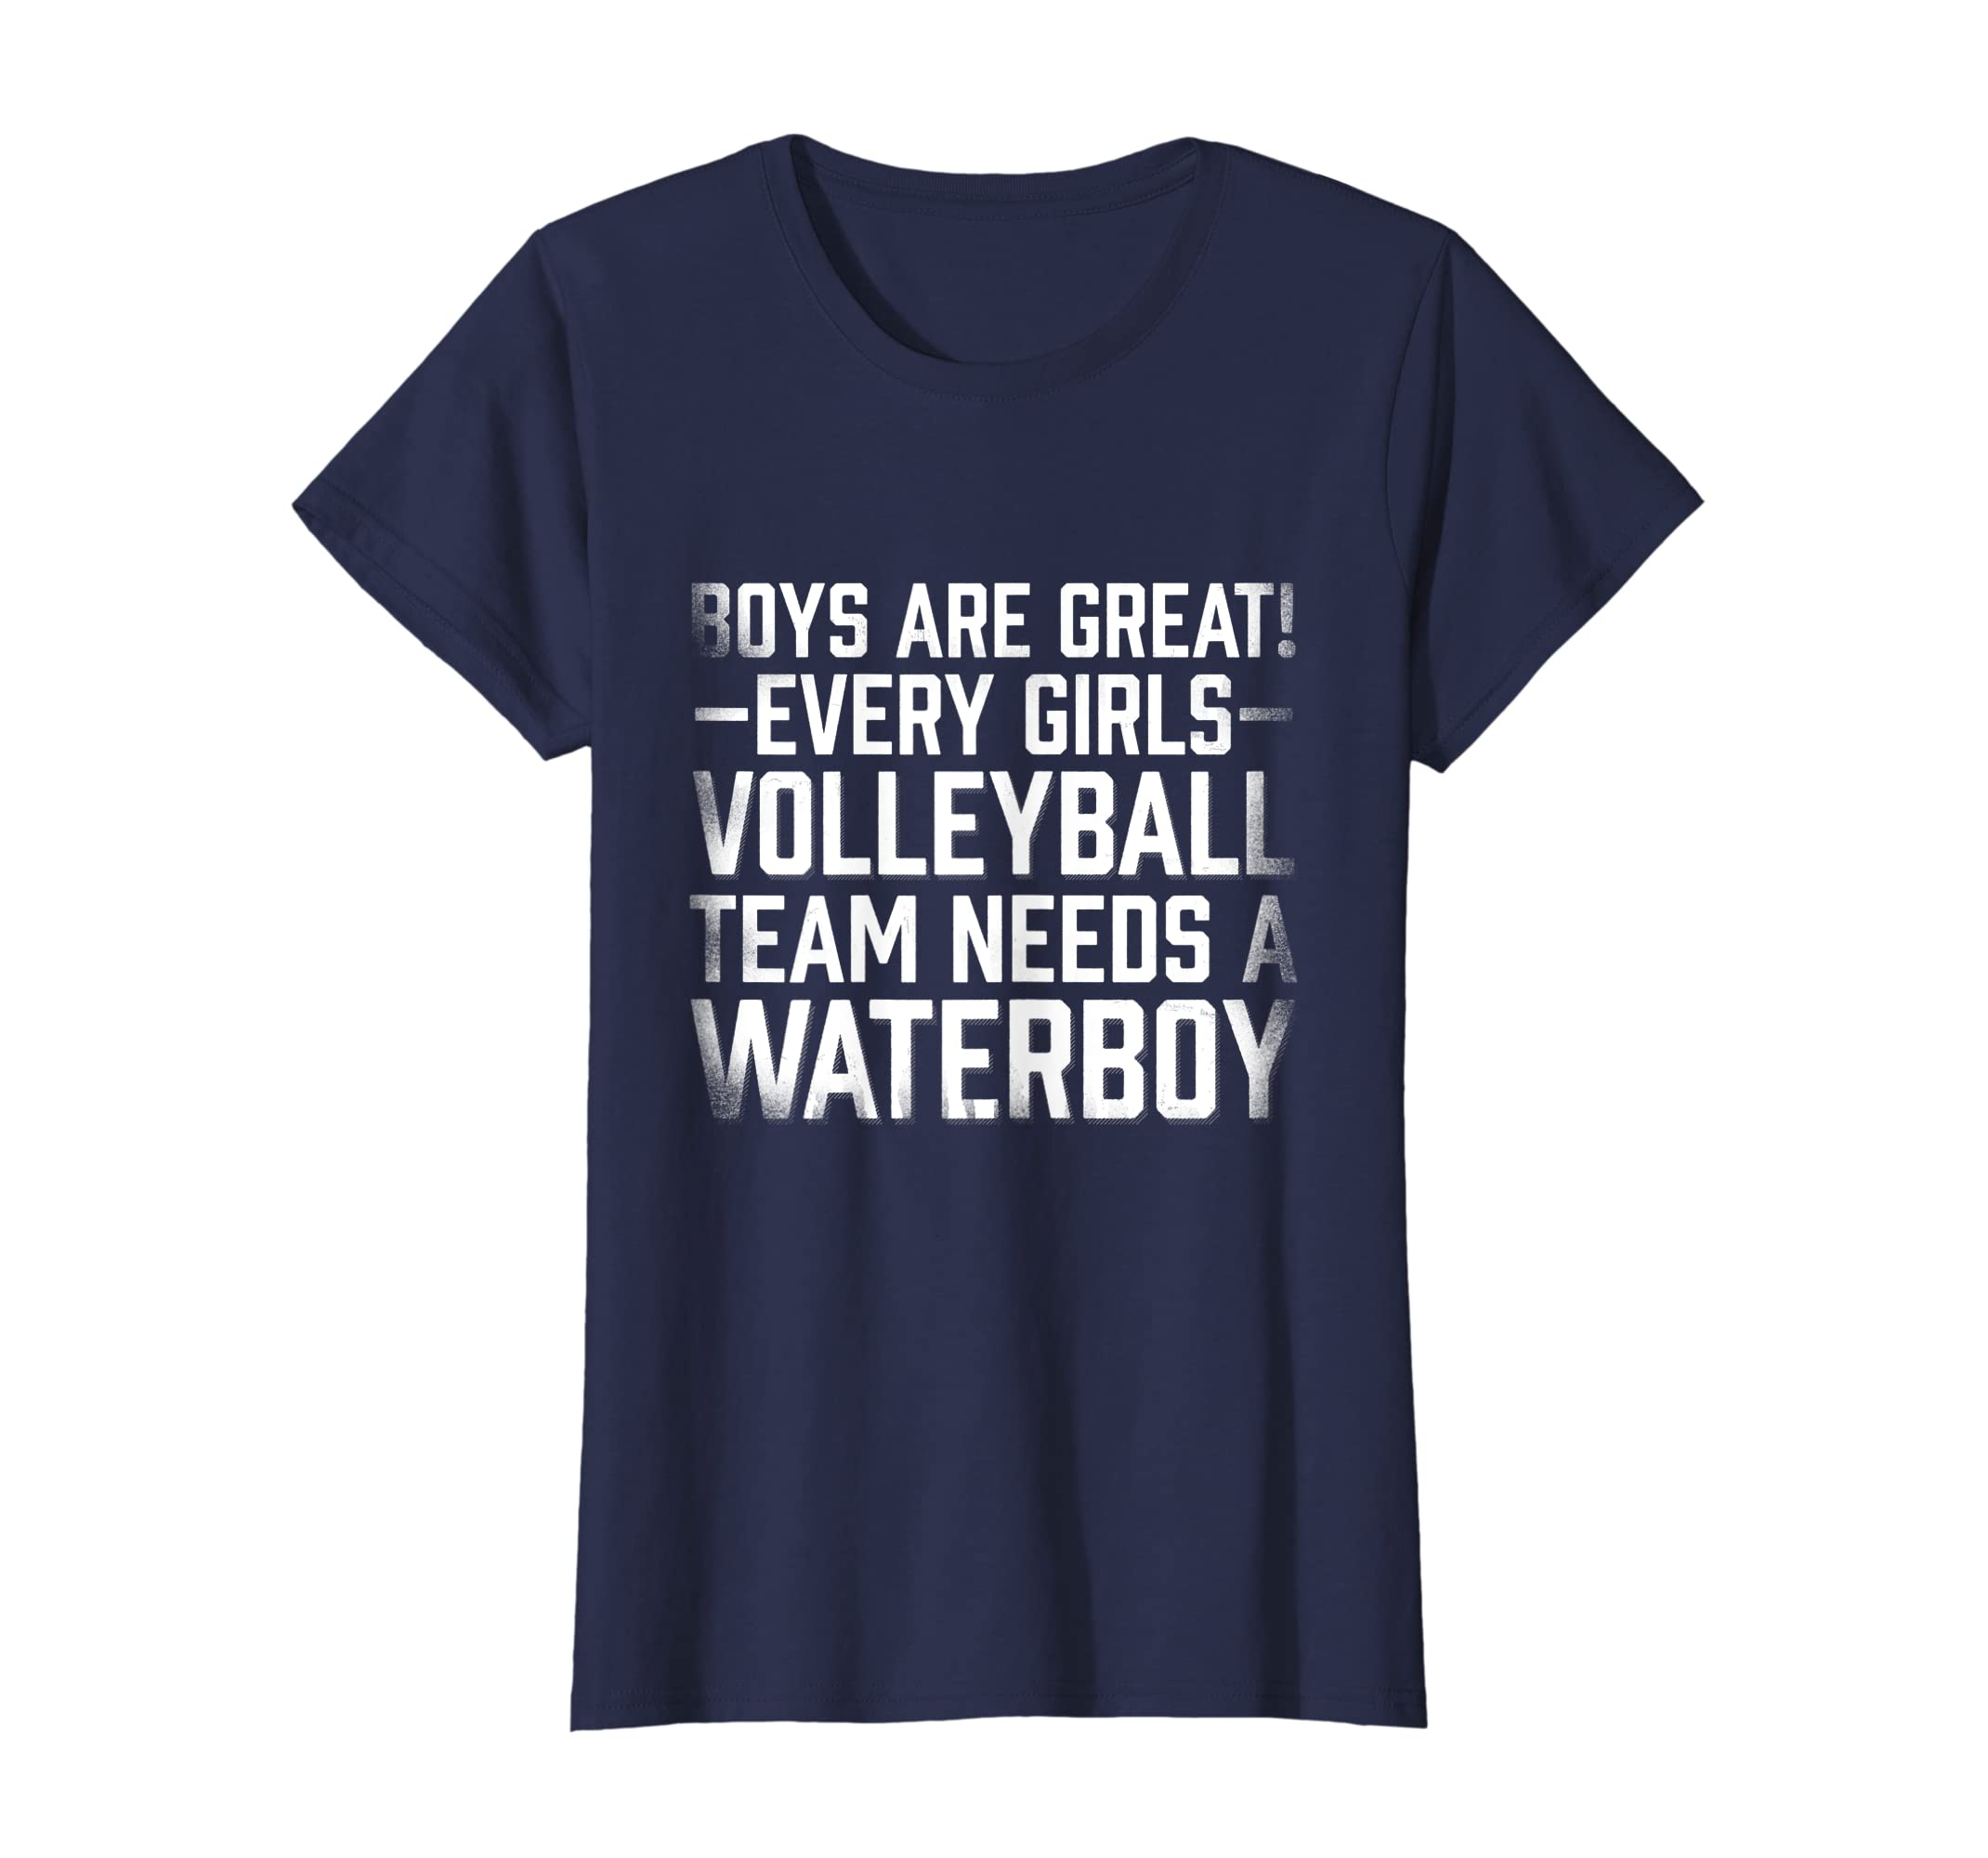 761c53340 Amazon.com: Boys Are Great Girl Volleyball Team Needs A Waterboy T Shirt:  Clothing